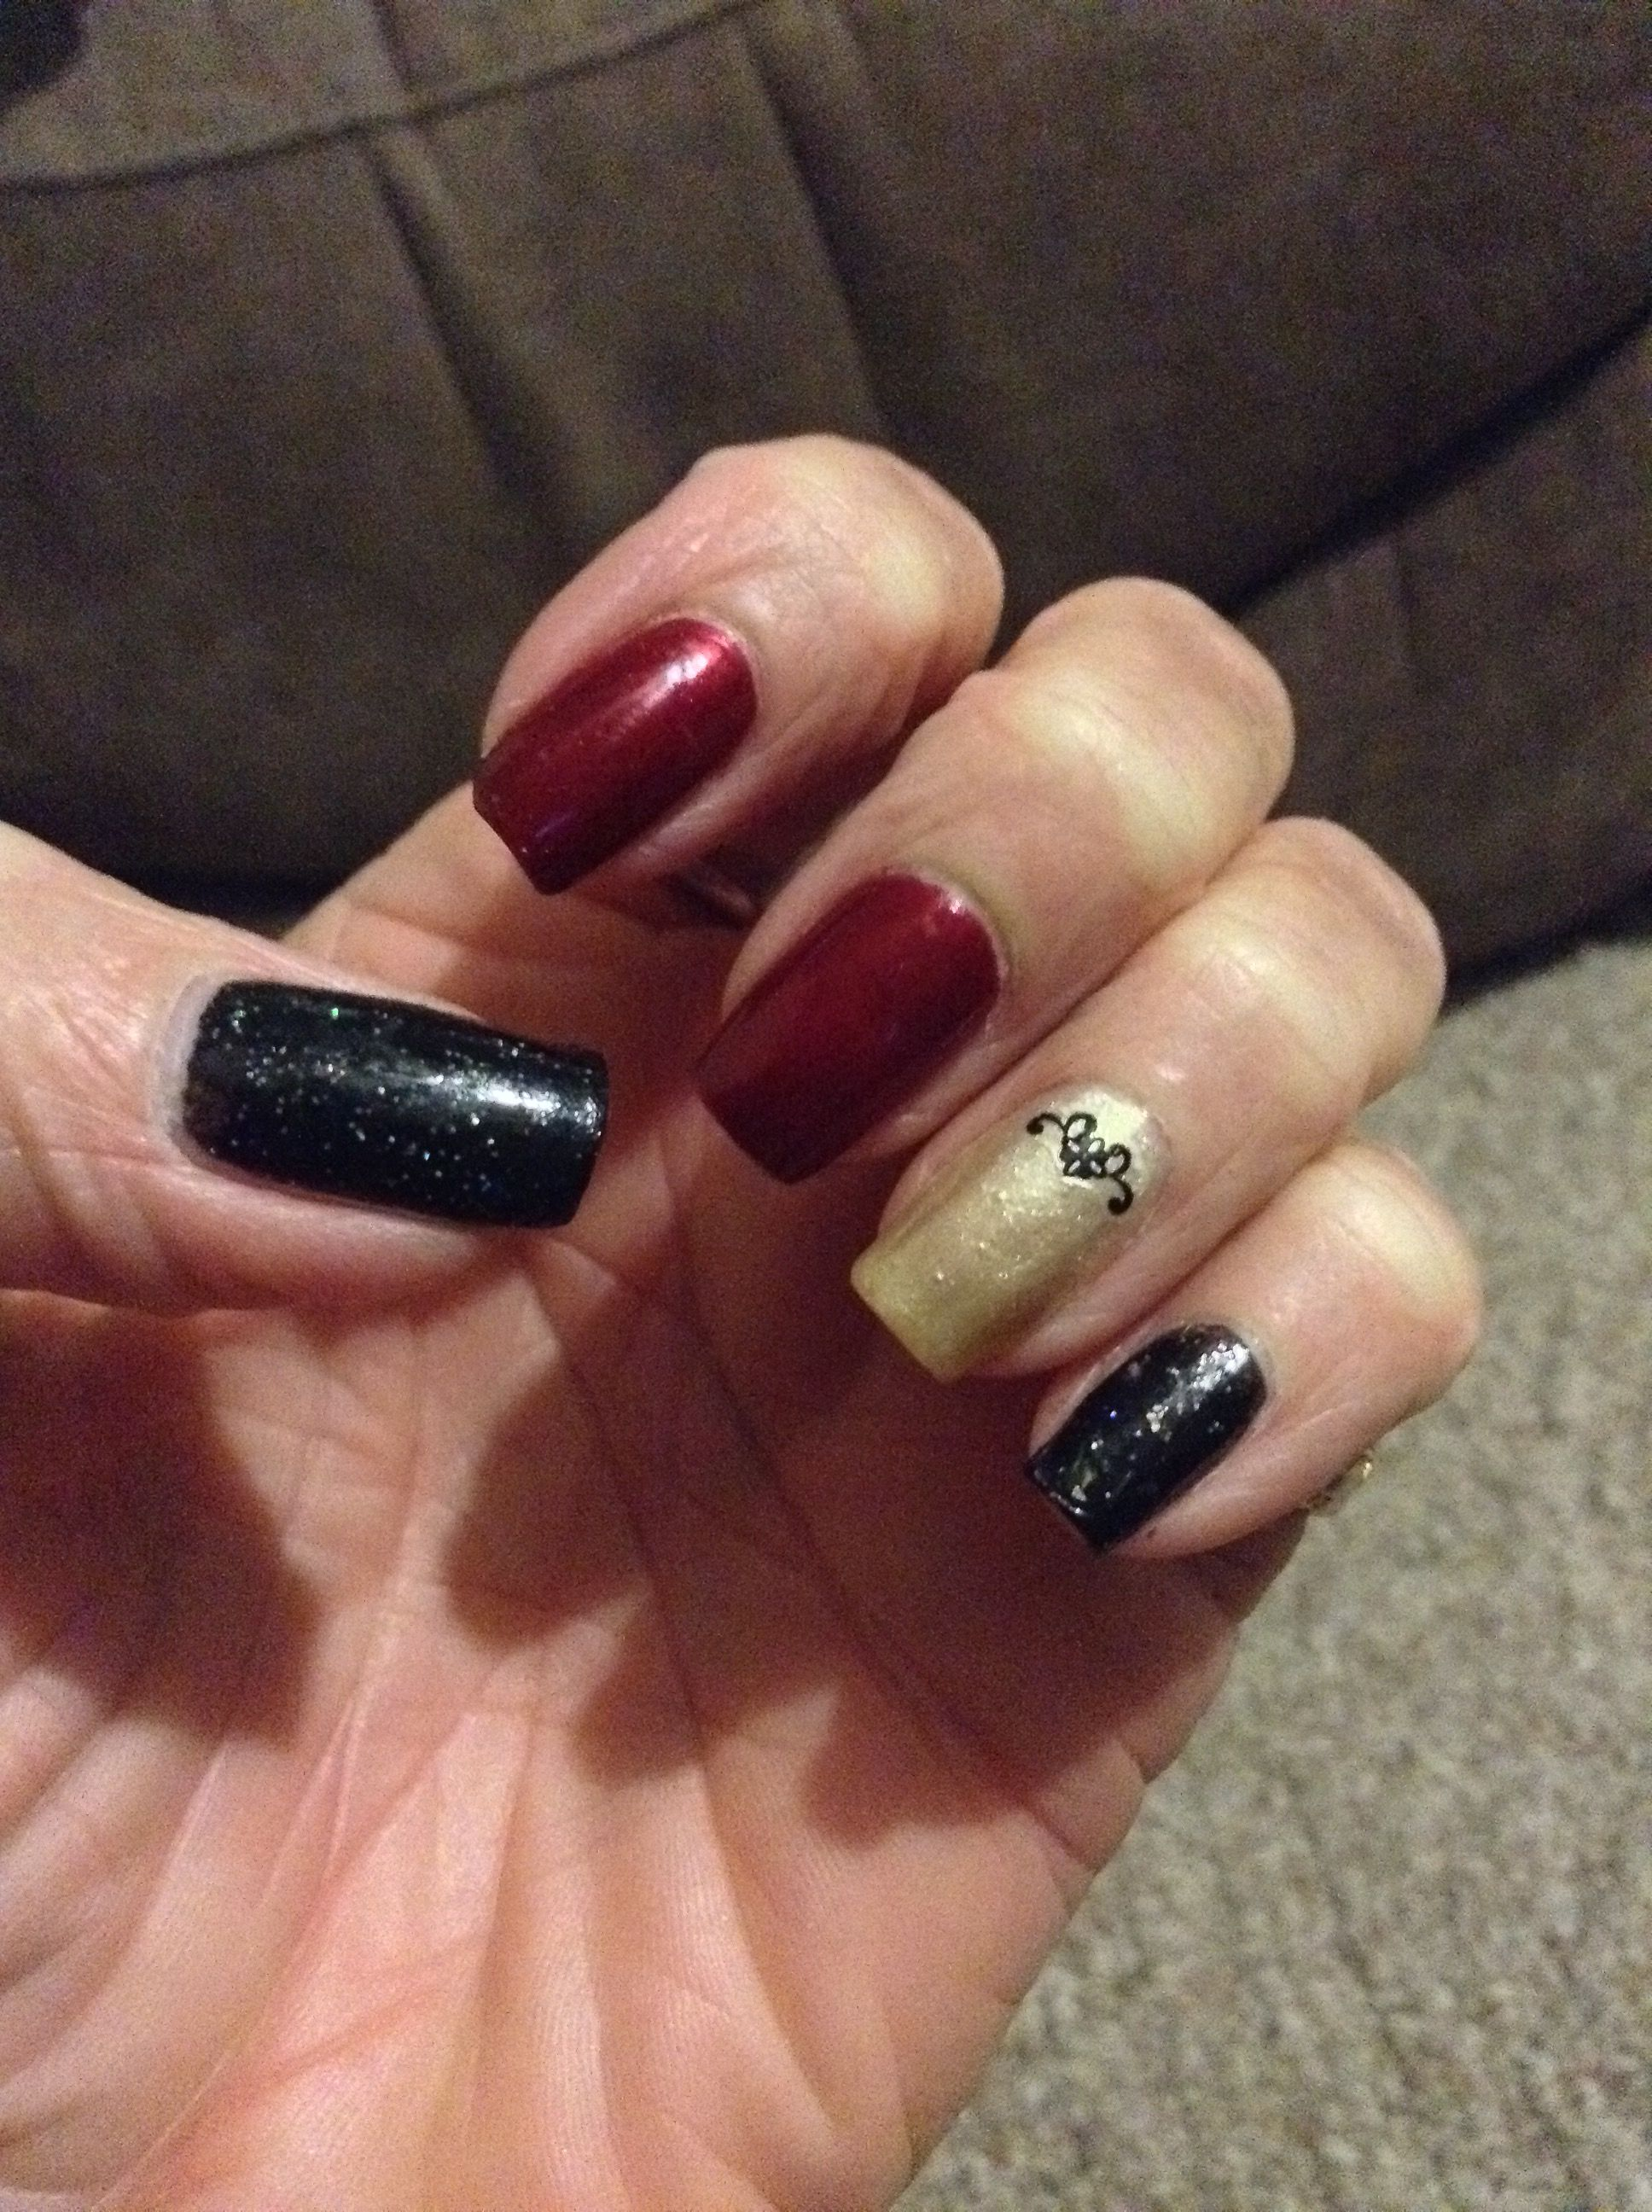 Ring finger is Broadway in Pearl Ivory/black is Sinful Colors in ...